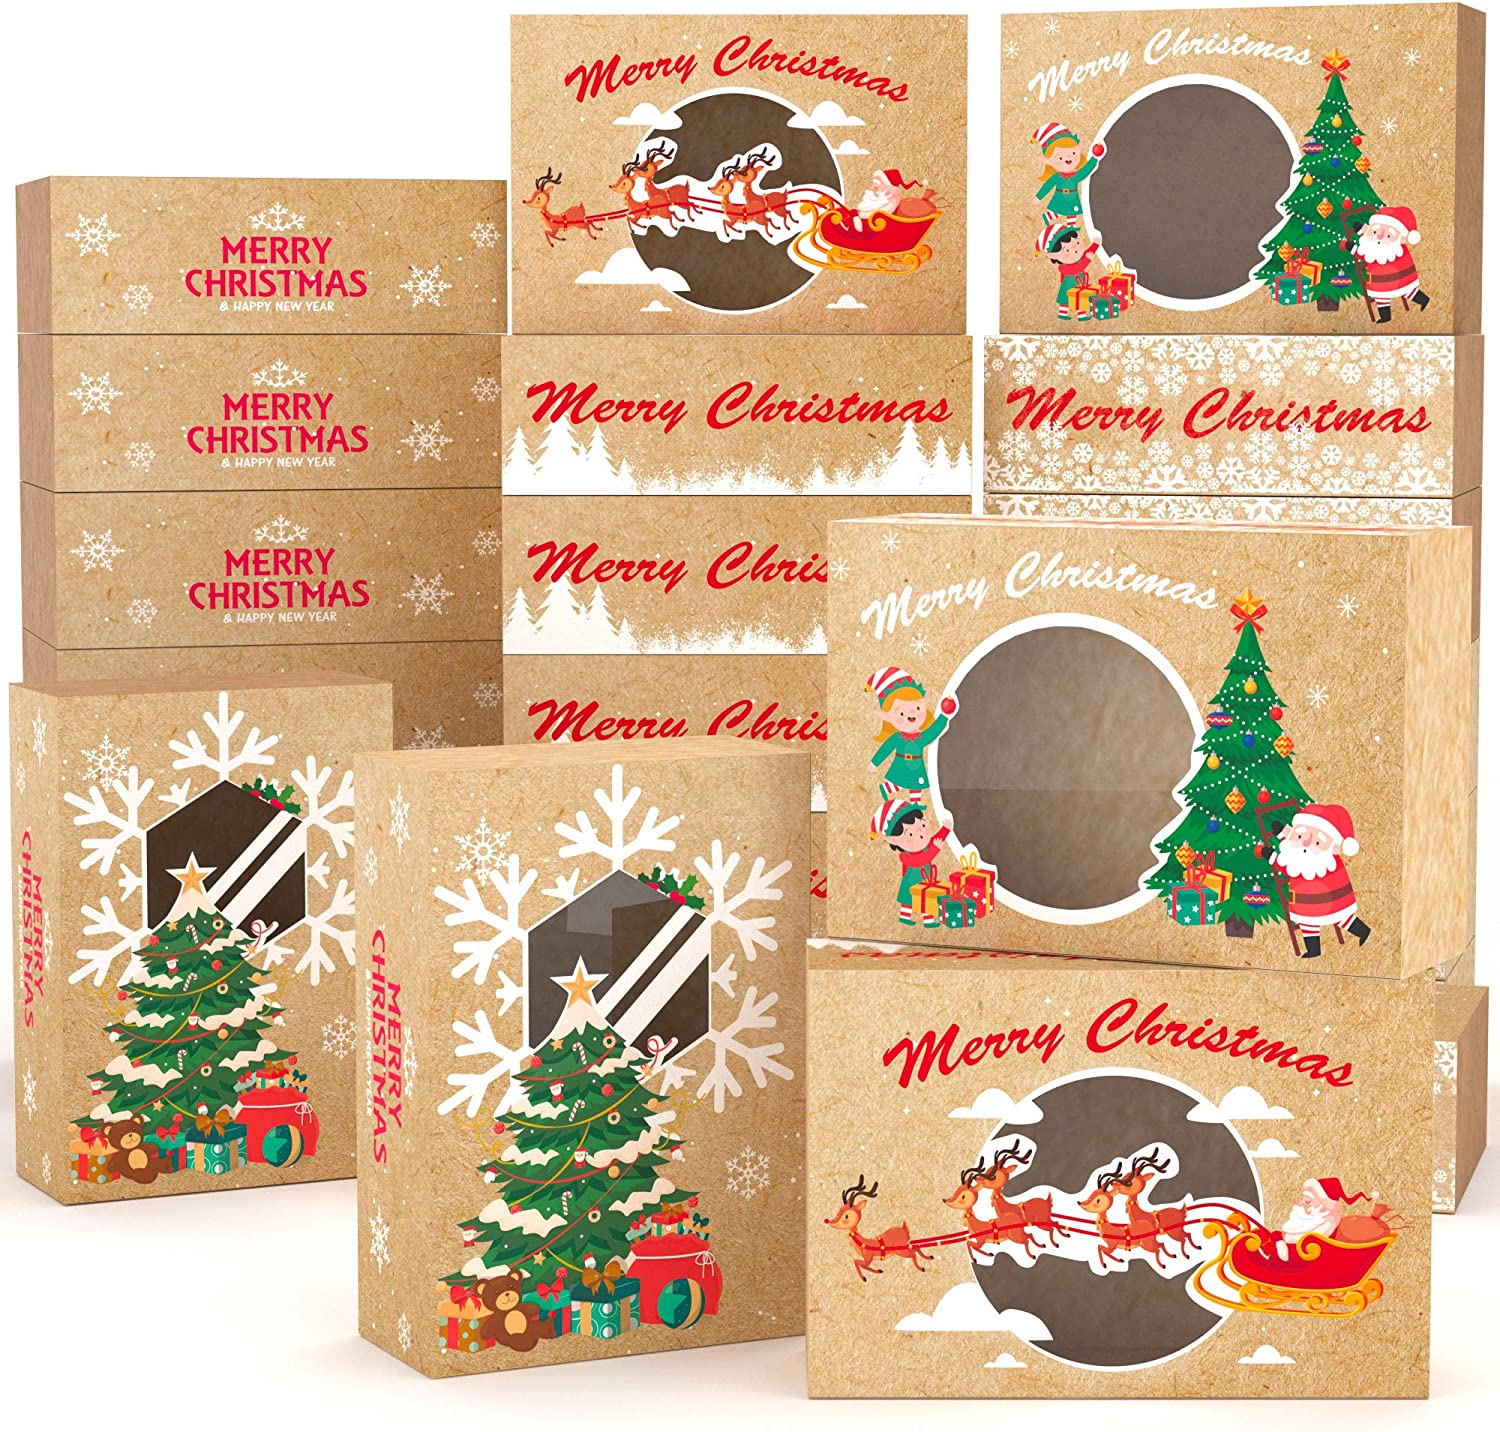 KD KIDPAR 24PCS Christmas Cookie Boxes Large for Gift Giving Packaging Holiday Christmas Food, Bakery Treat Boxes with Window, Candy and Cookie Boxes 8.8x6x2.8